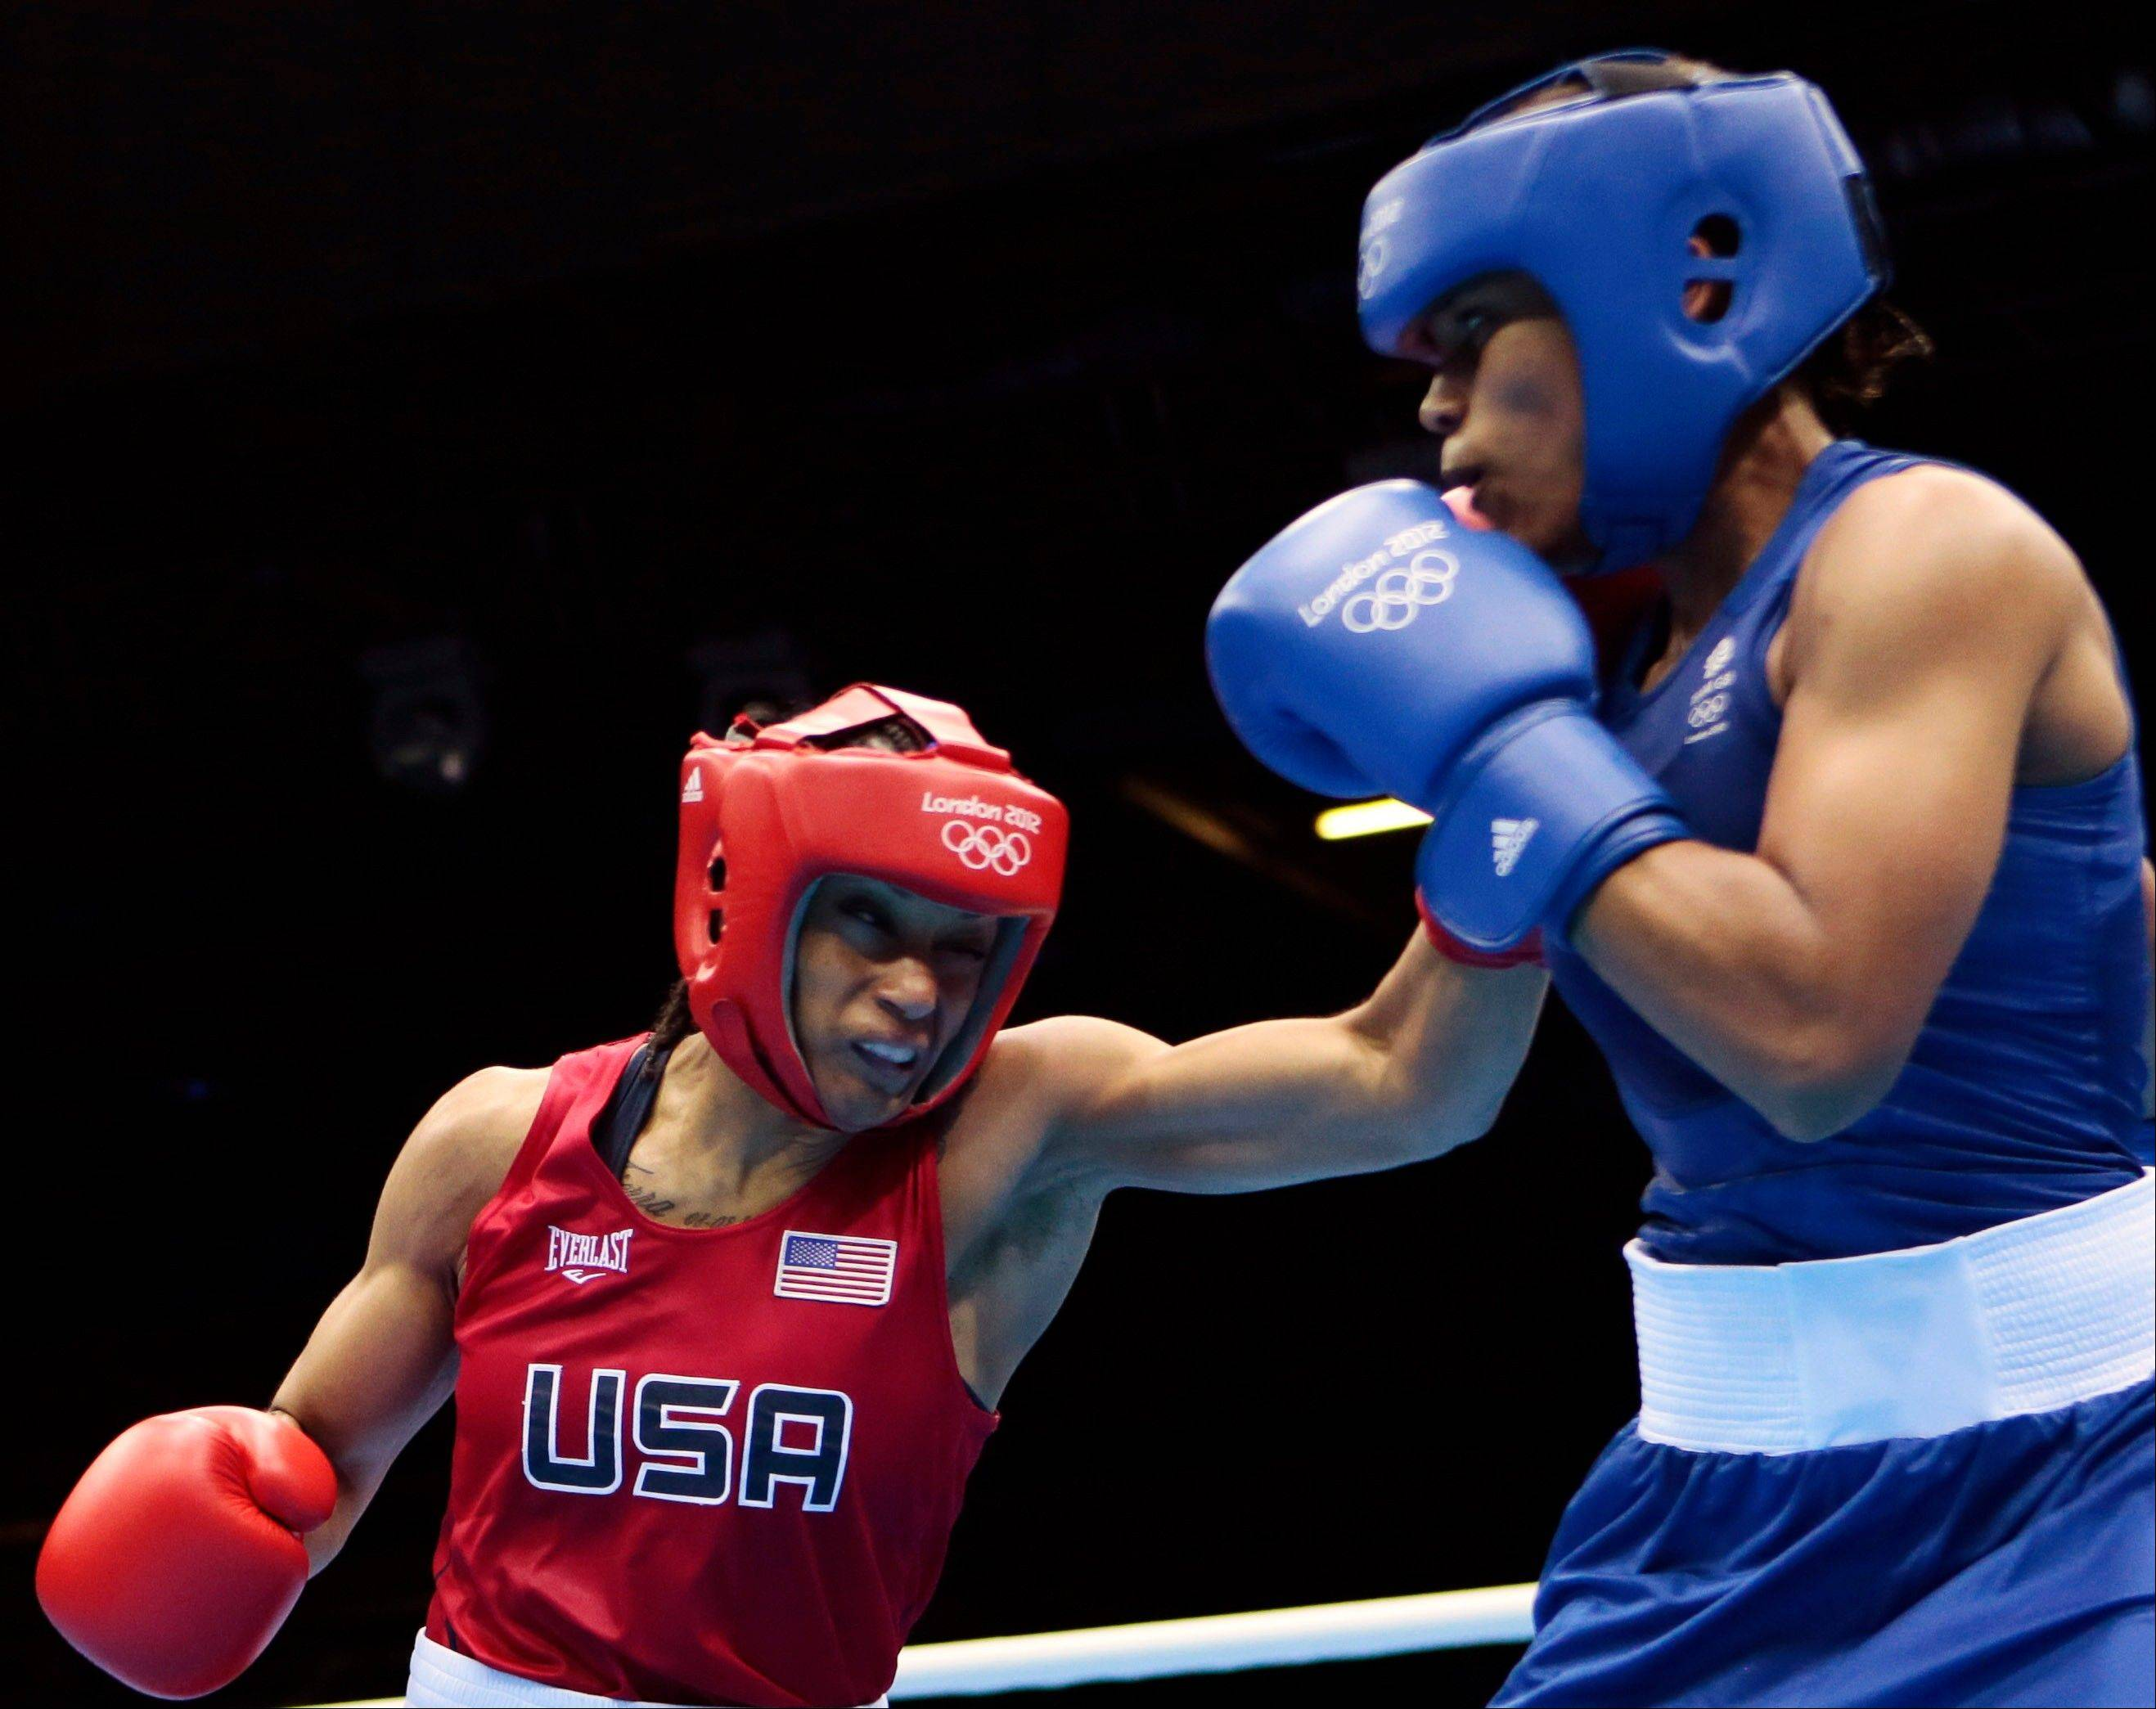 Quanitta Underwood of the United States, left, and Natasha Jonas of Great Britain, fight during the women's lightweight boxing competition at the 2012 Summer Olympics, Sunday, Aug. 5, 2012, in London.